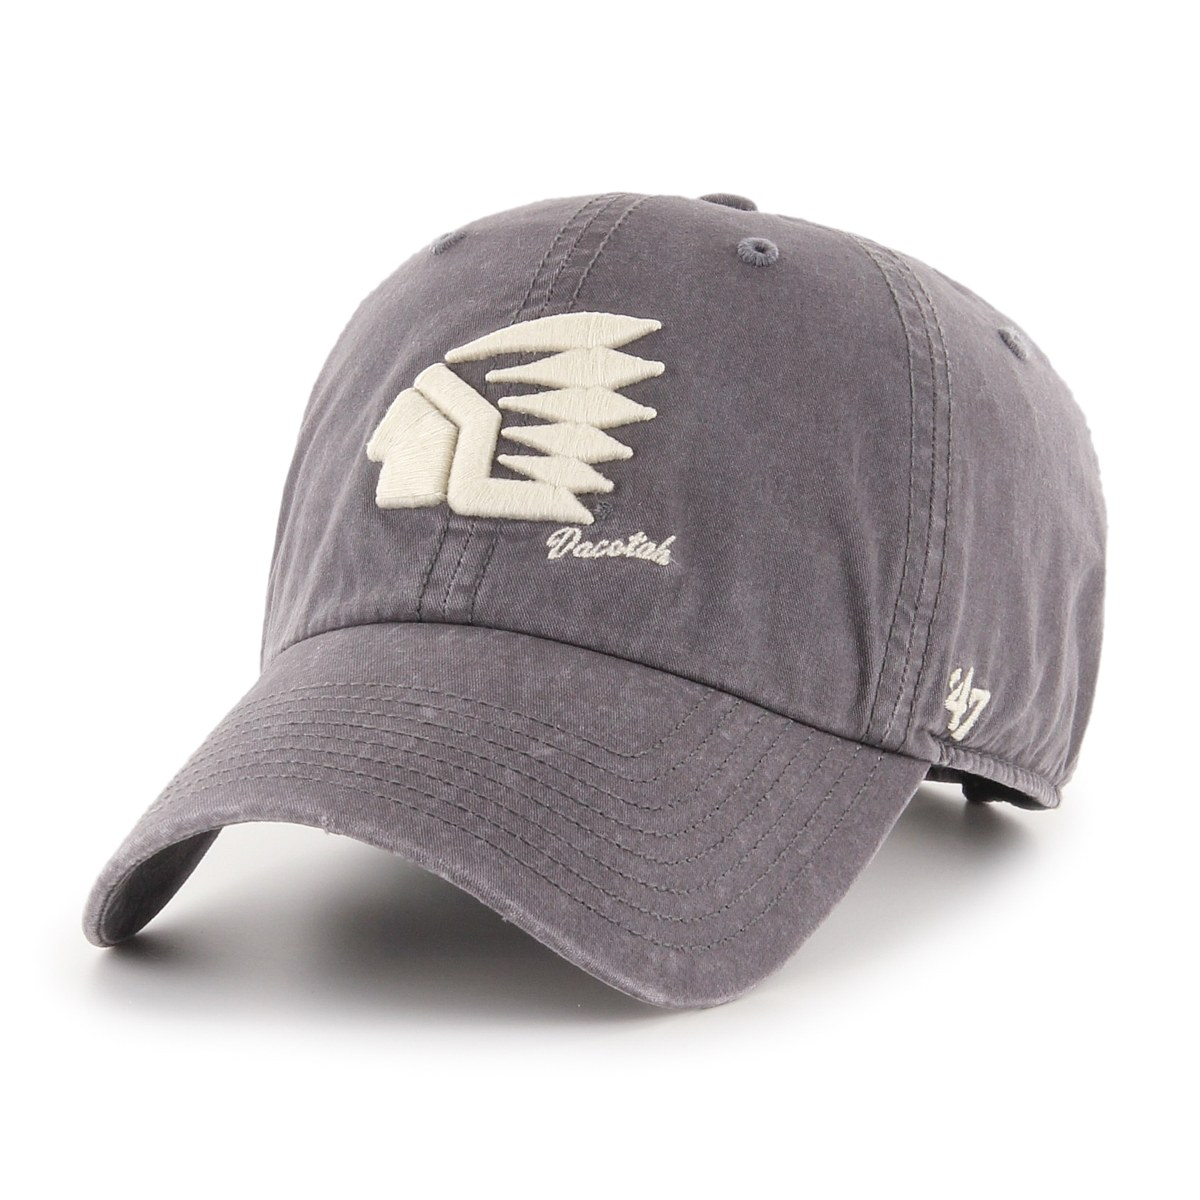 UNIVERSITY OF NORTH DAKOTA FIGHTING SIOUX HUDSON GEO HAT